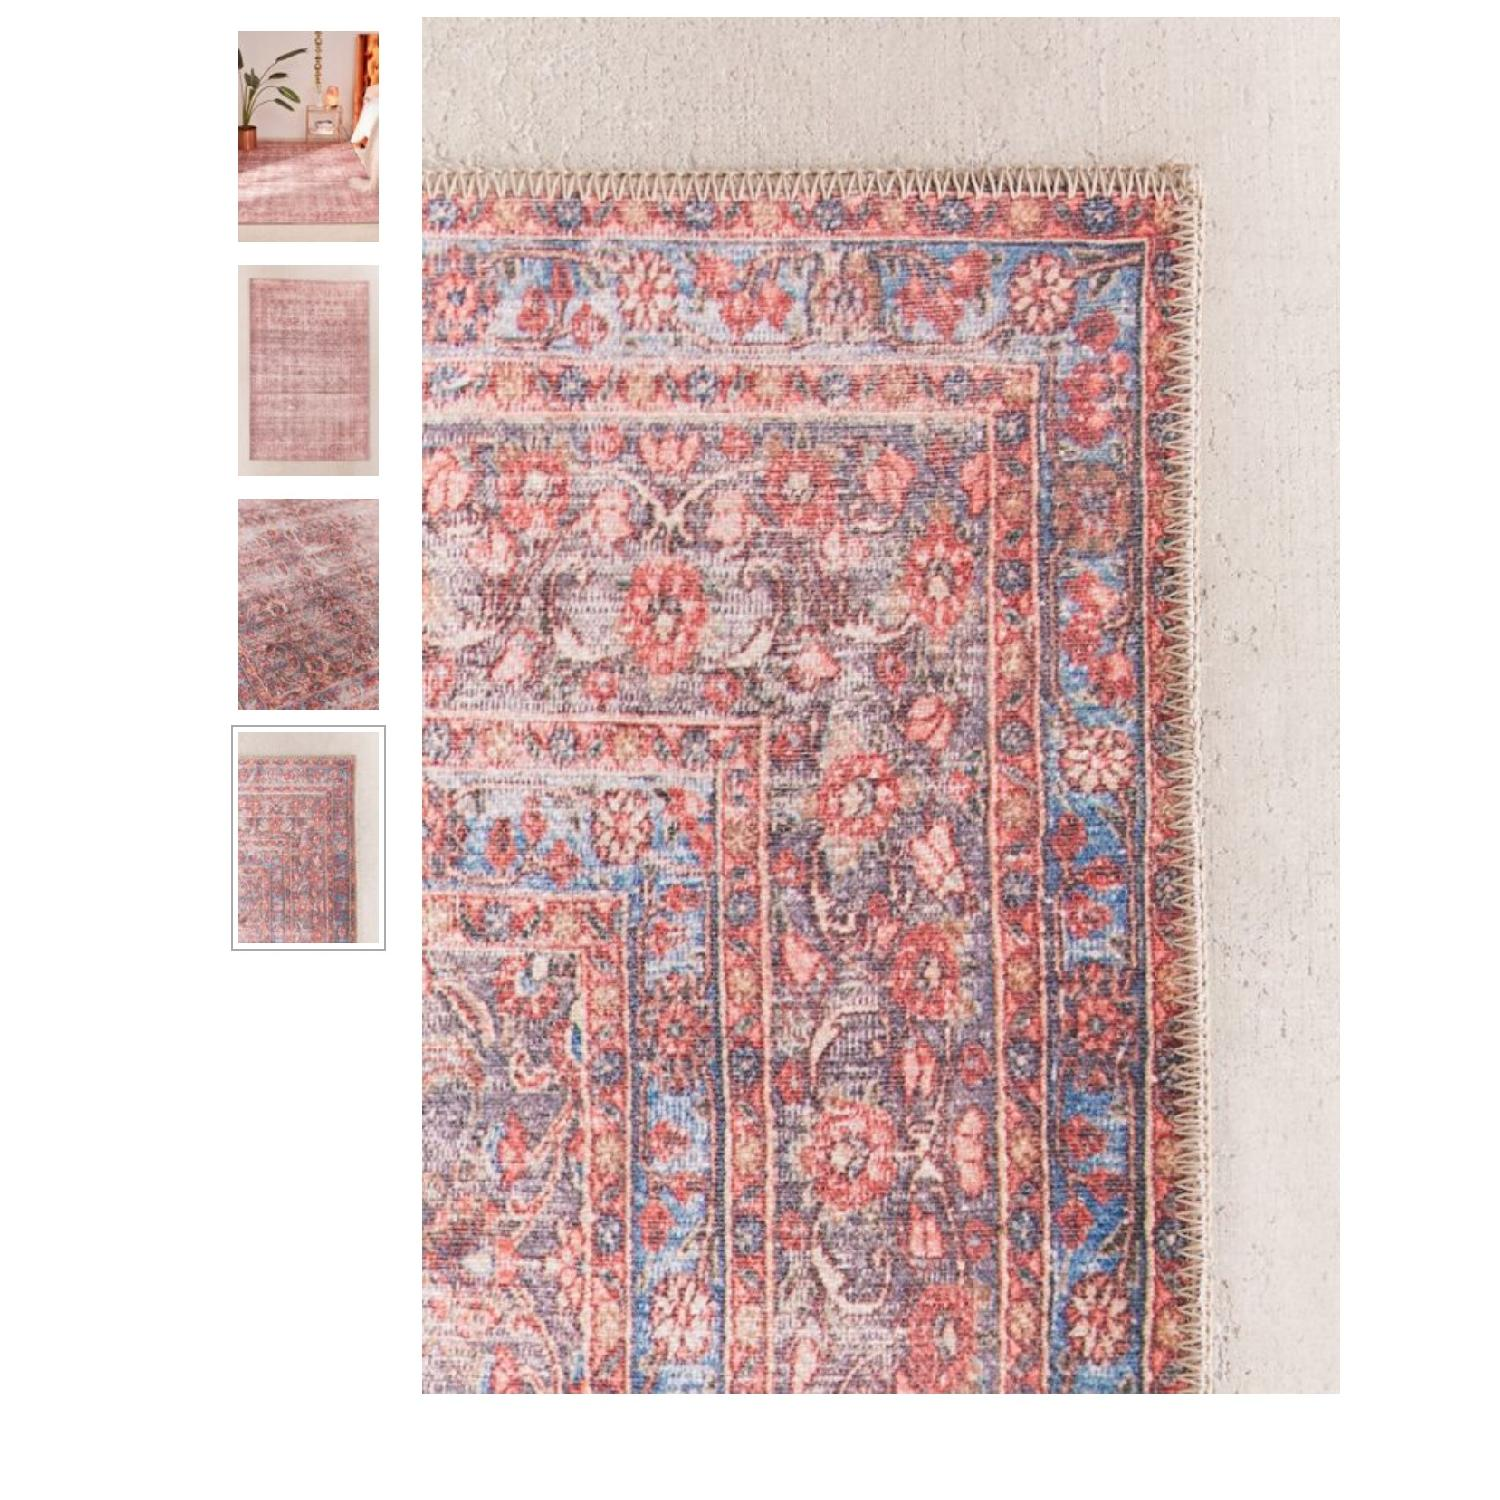 Urban Outfitters Mable Printed Rug - image-1